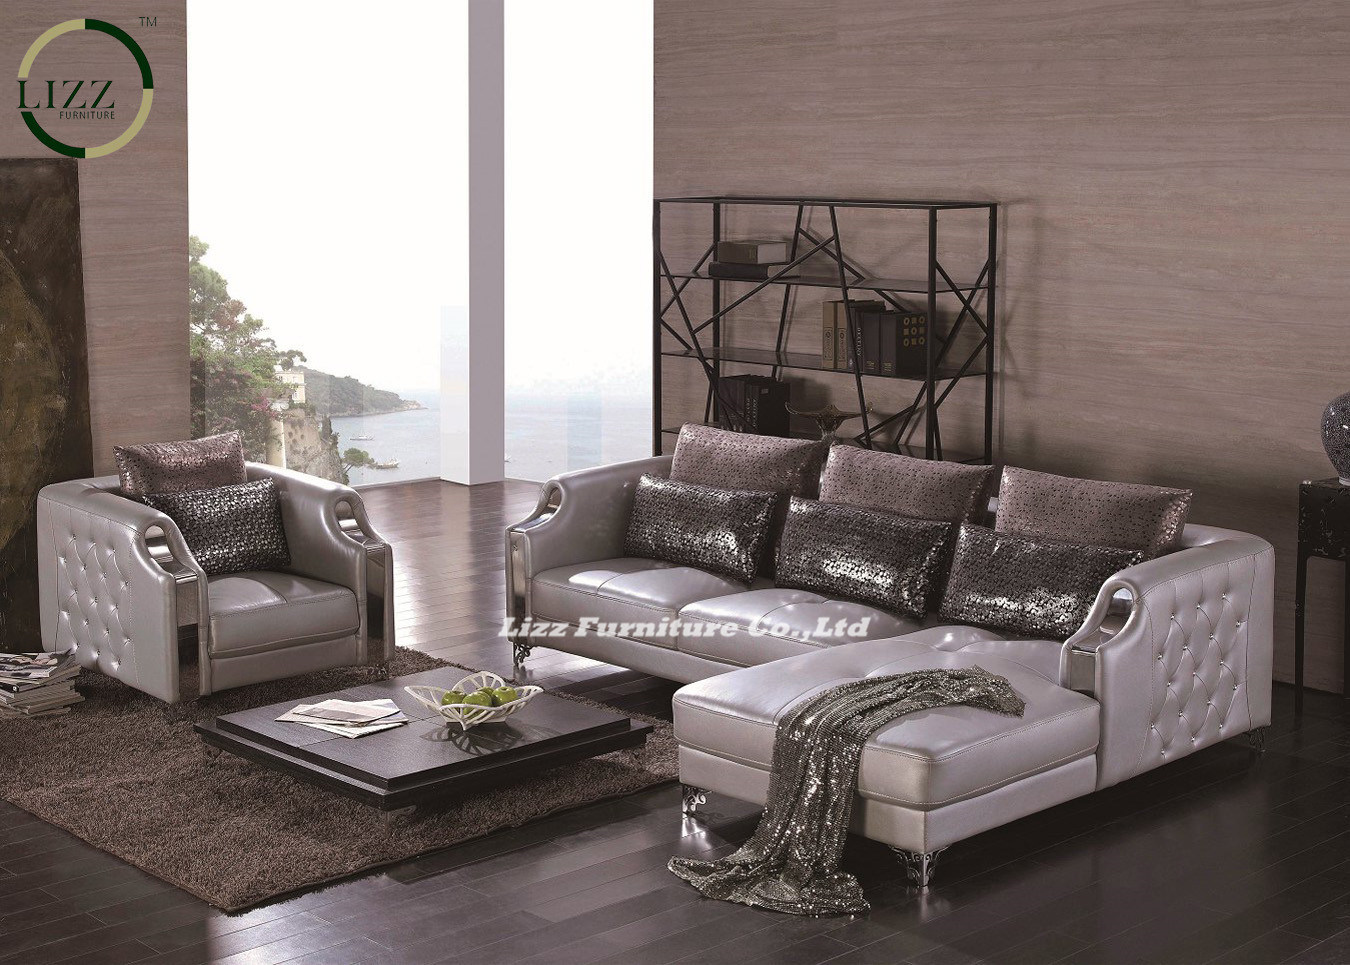 Luxury Classic Euro Style Leather Sofa (LZ-077)